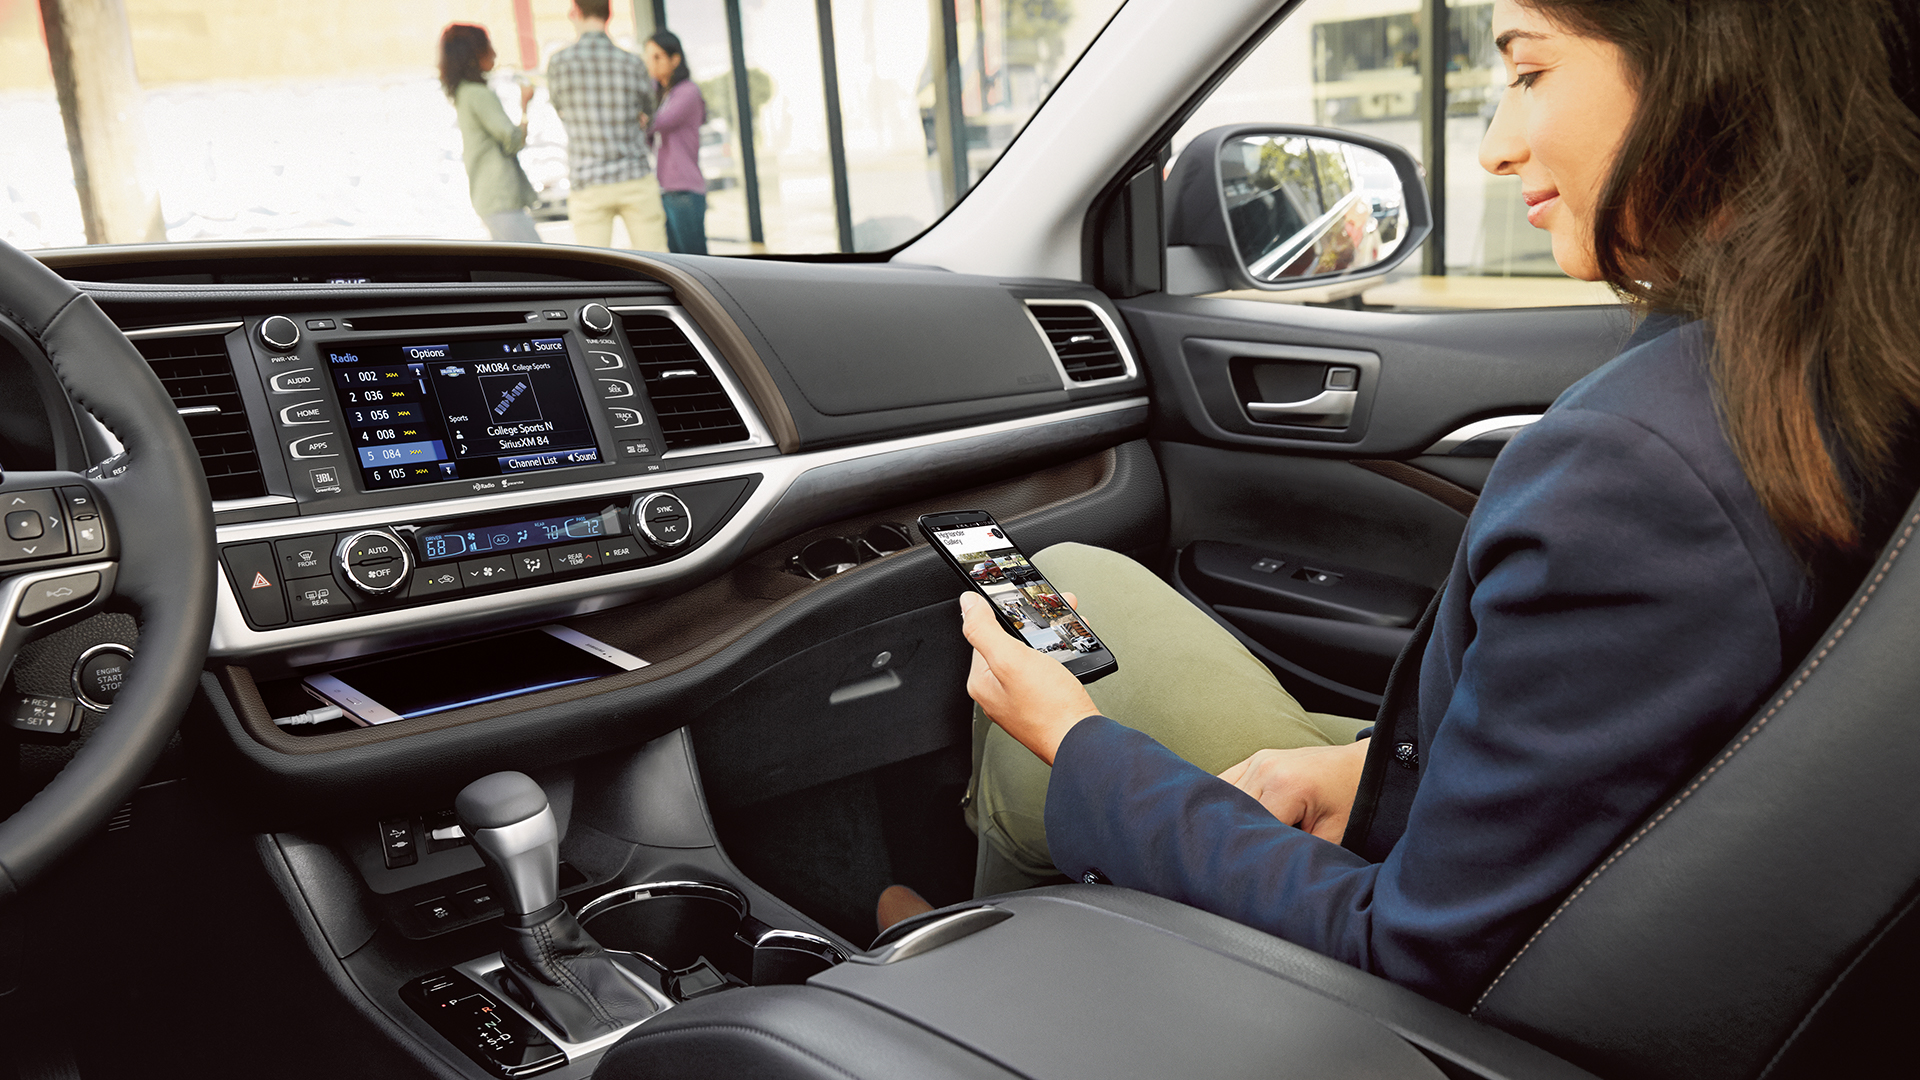 Toyota Highlander Interior Images Galleries With A Bite